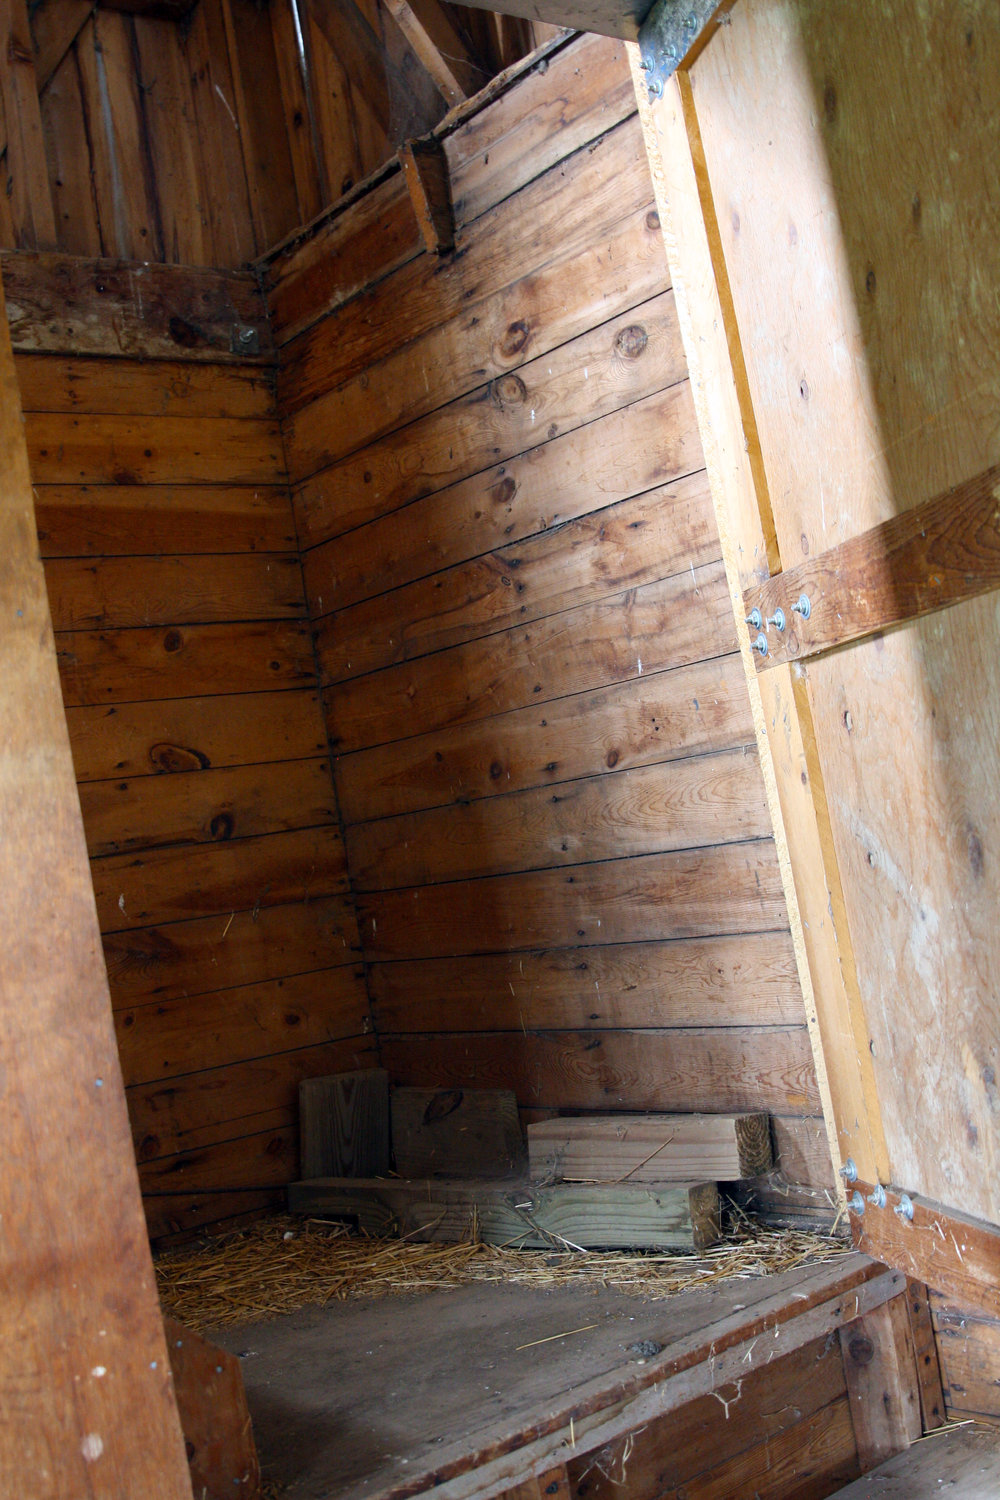 The entrance to the staircase inside the barn.